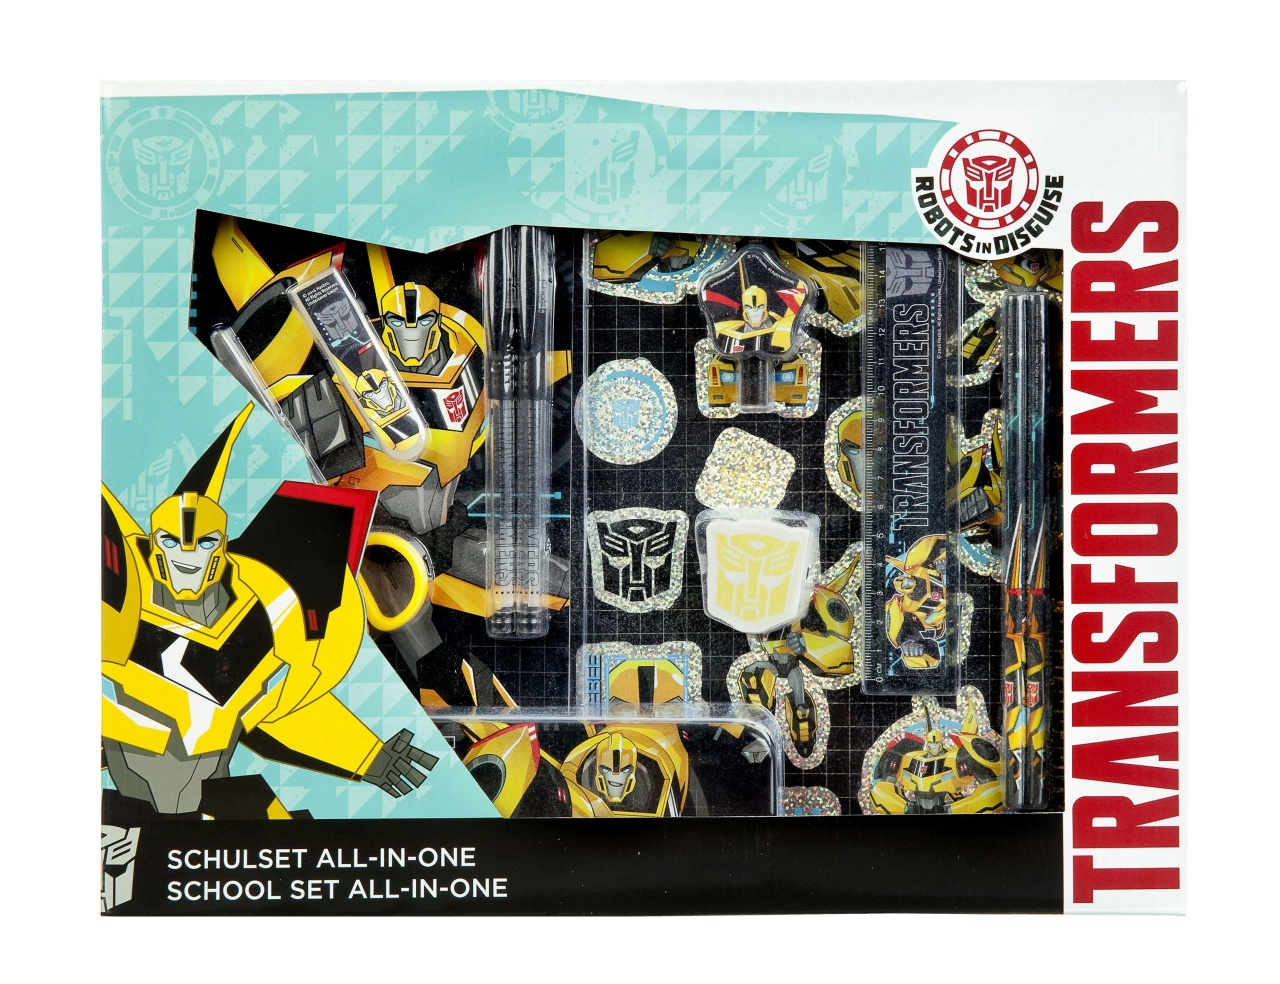 Transformers Schulset all-in-one